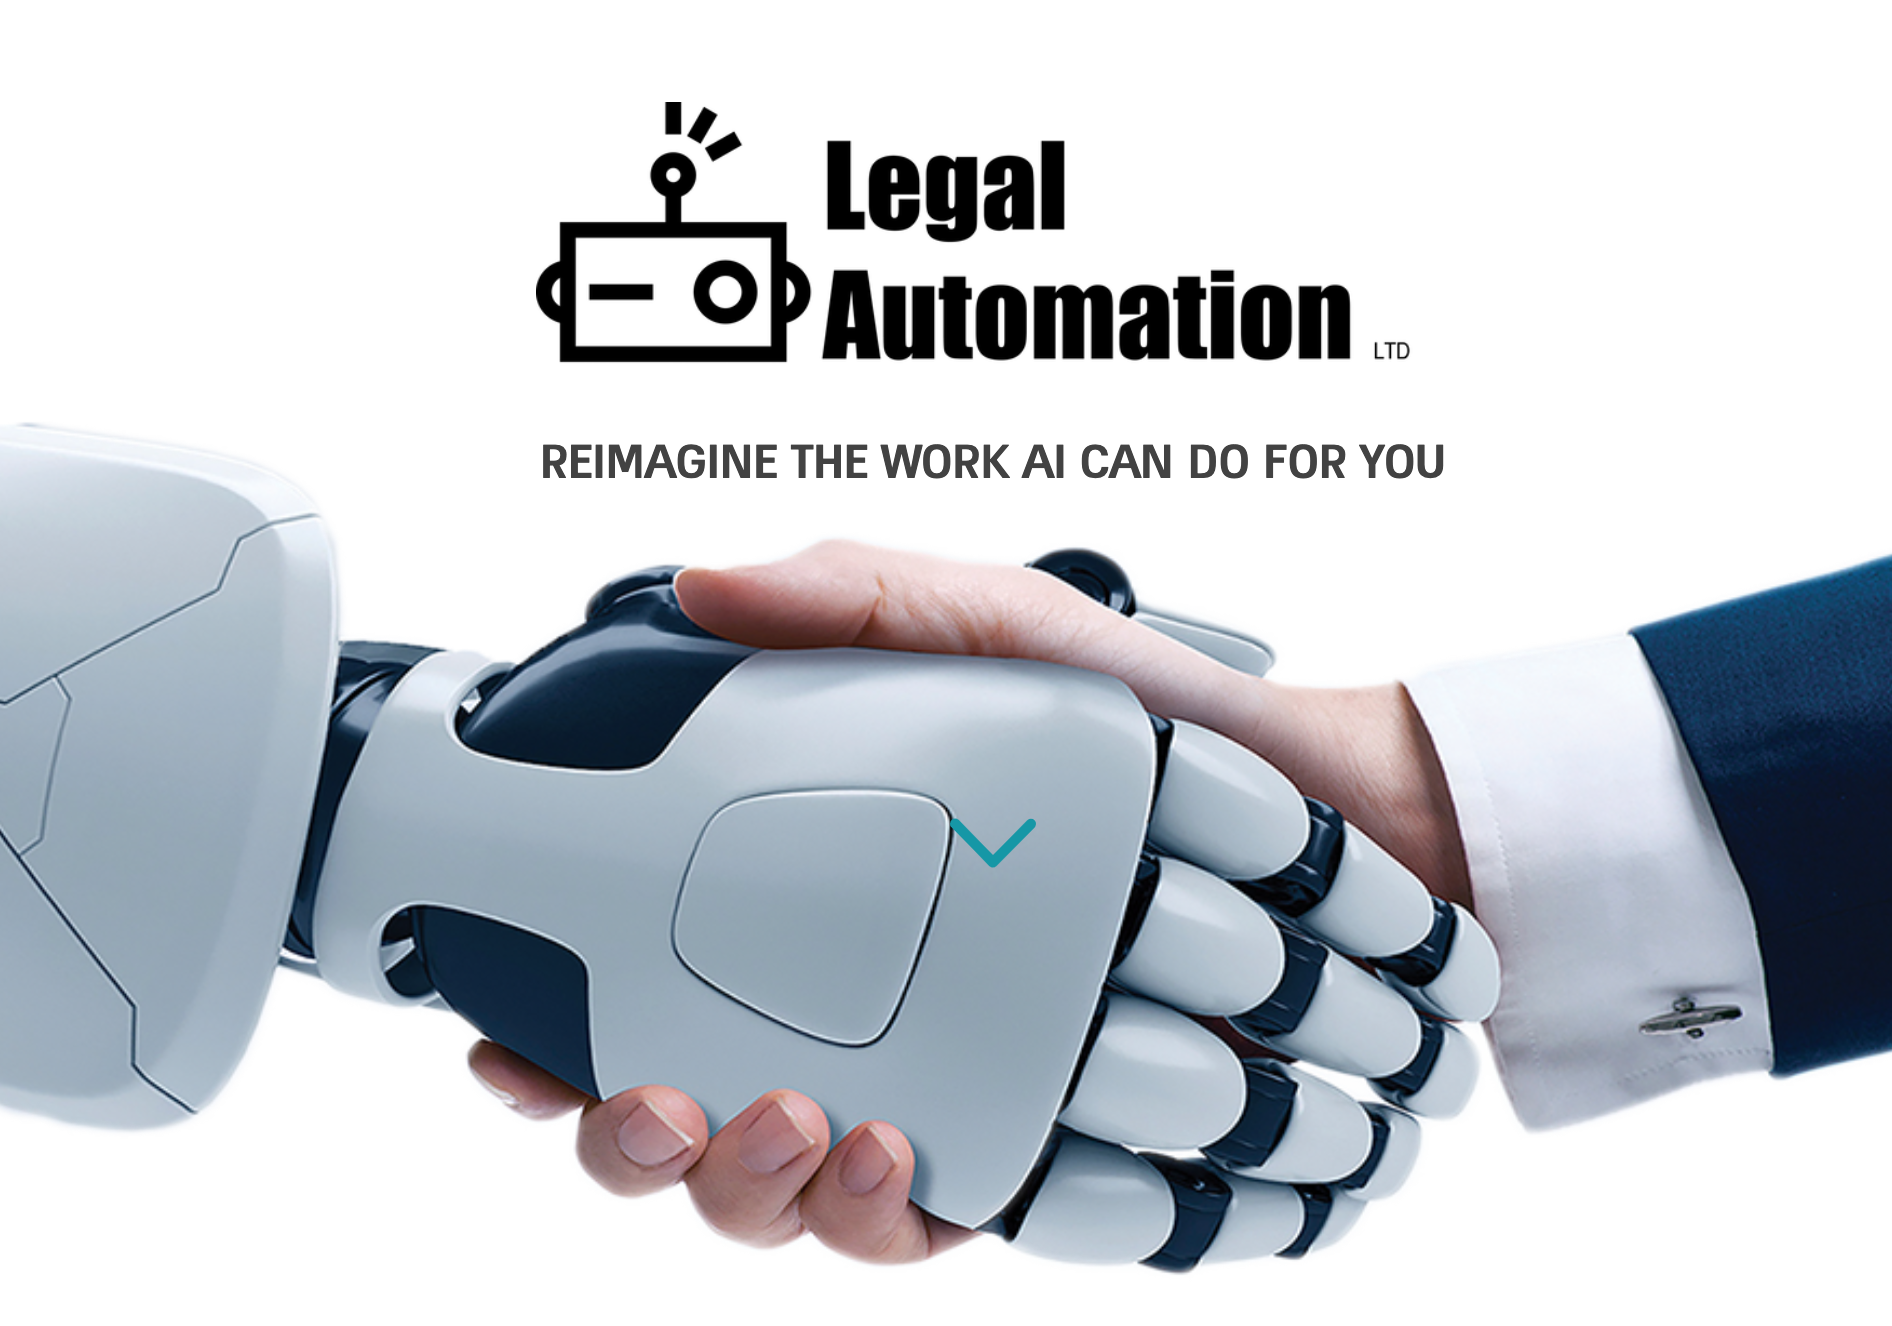 Legal Automation